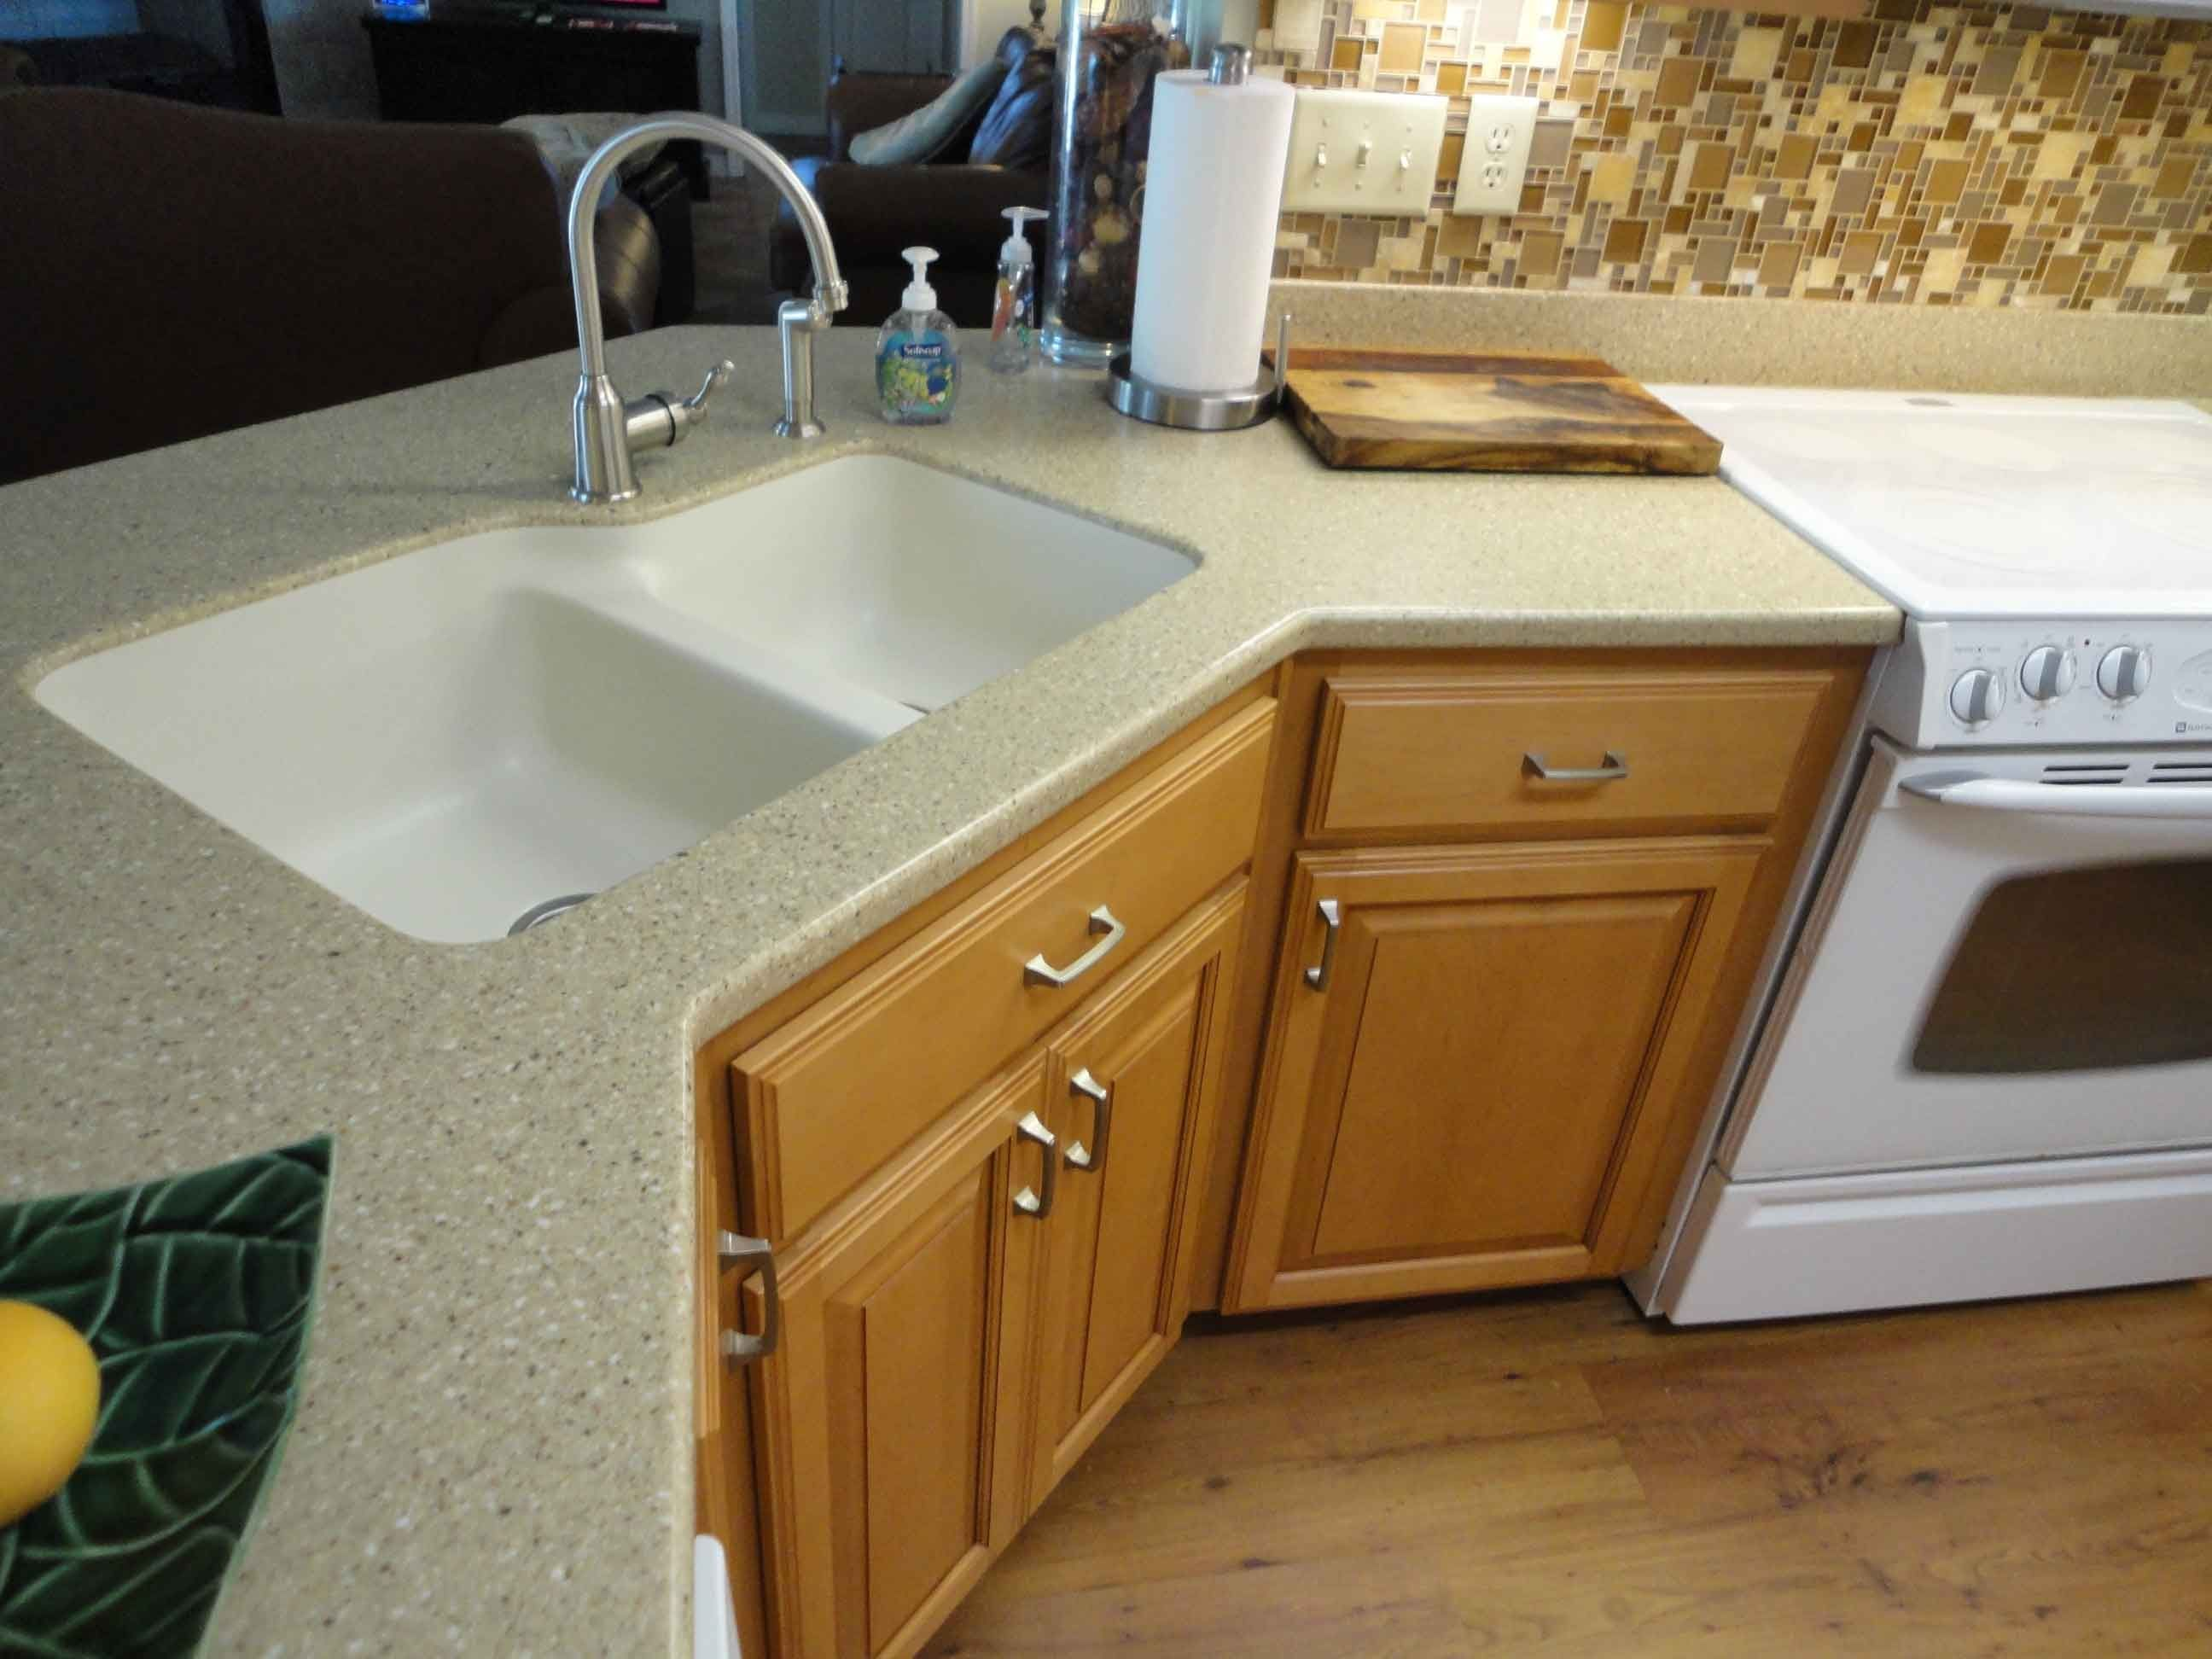 Solid Surface Kitchen Countertops With Sink Corner sink